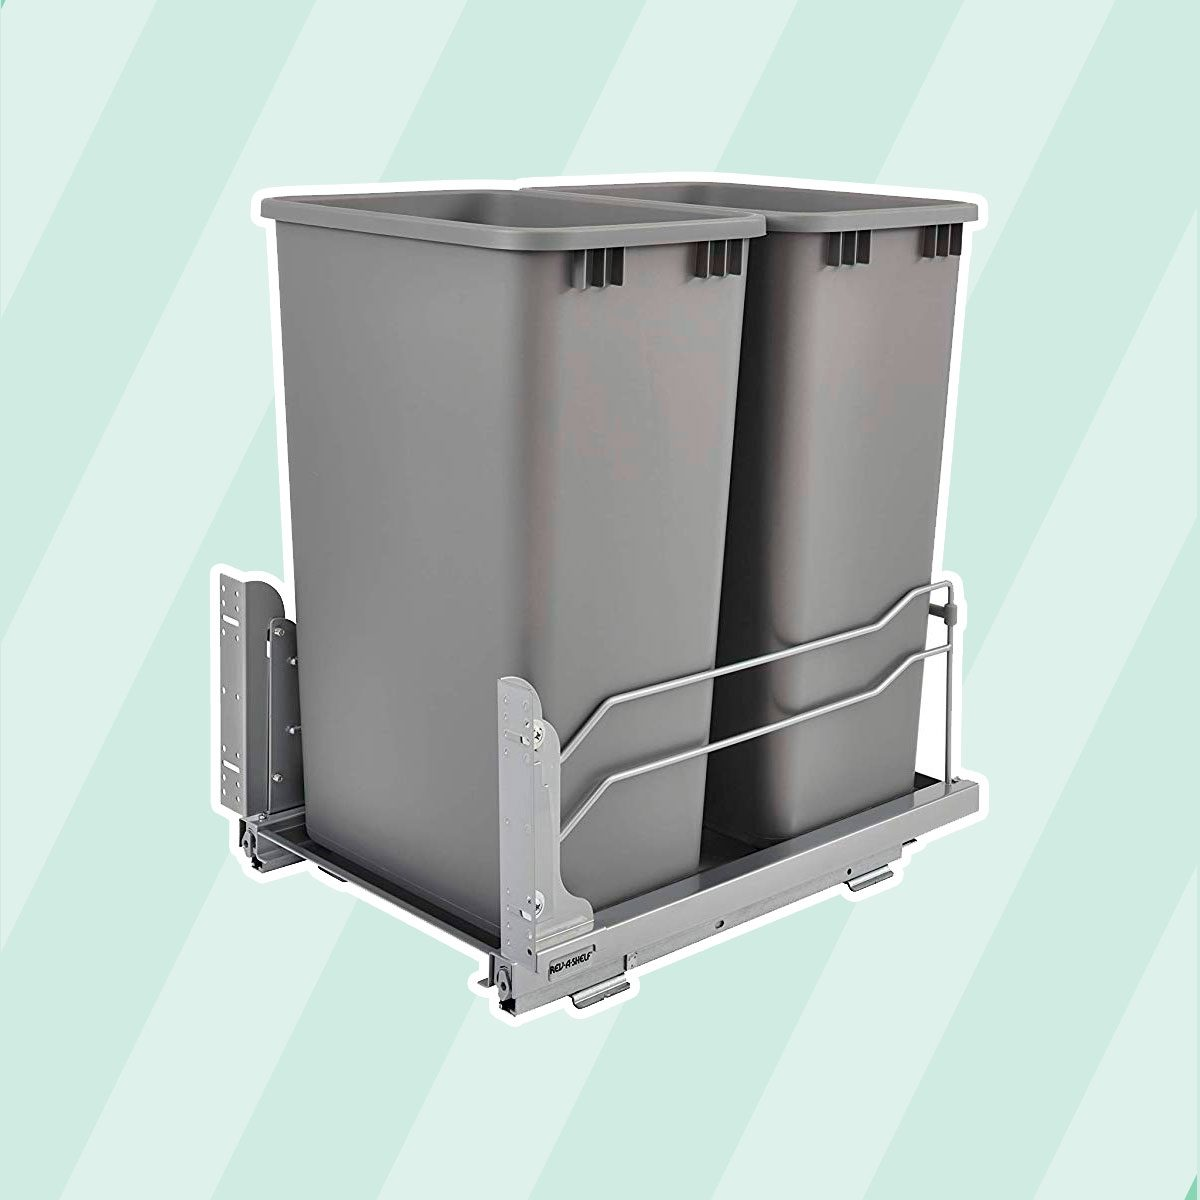 Pull-out waste container